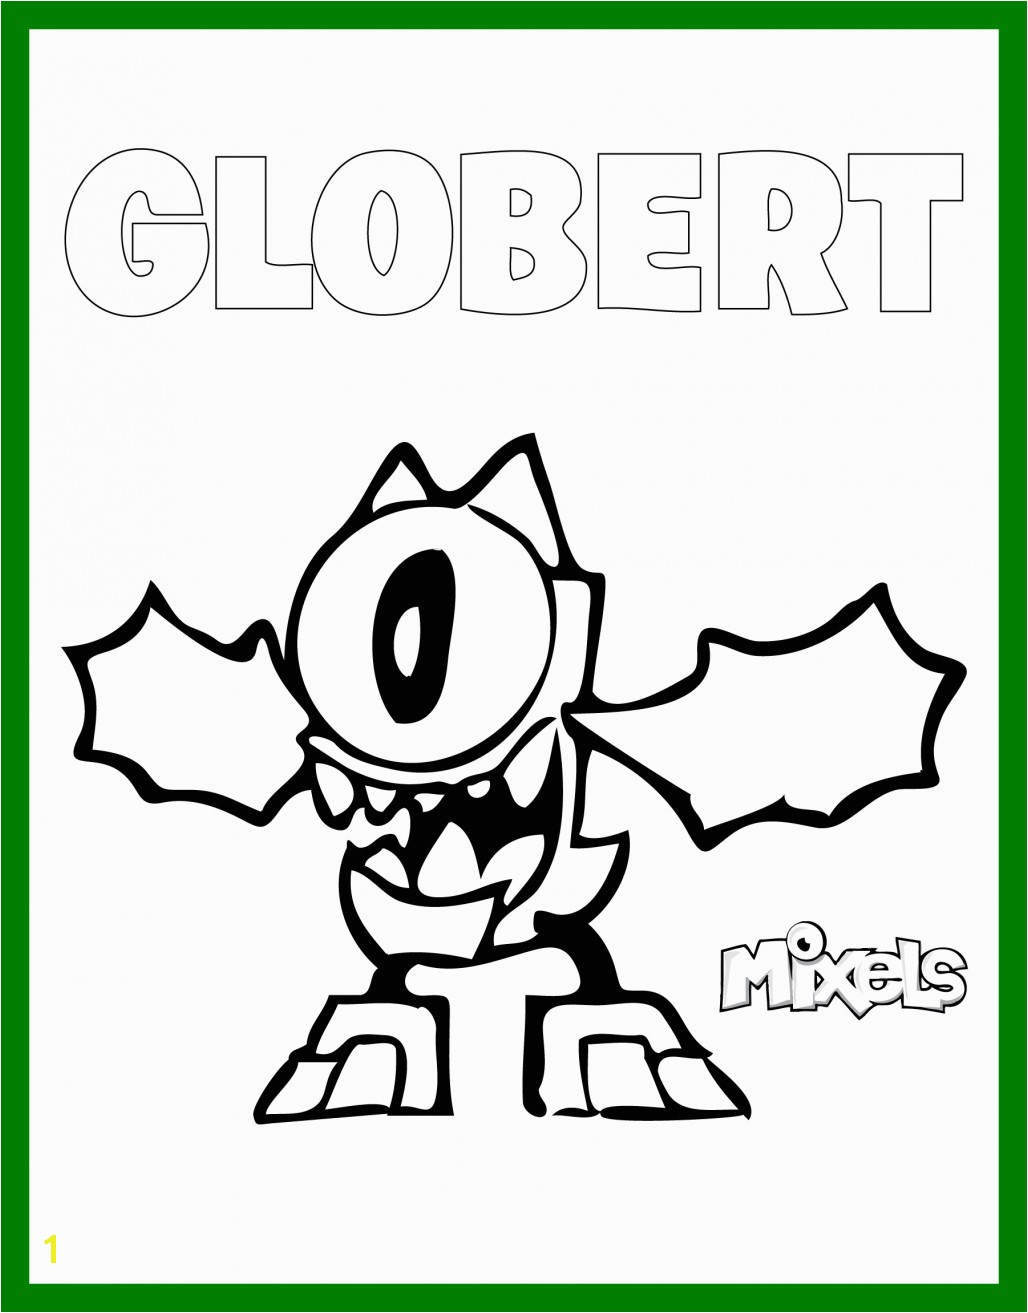 Mixels Coloring Pages Series 9 Mixels Coloring Pages Series 9 Awesome 14 Unique Skylanders Giants